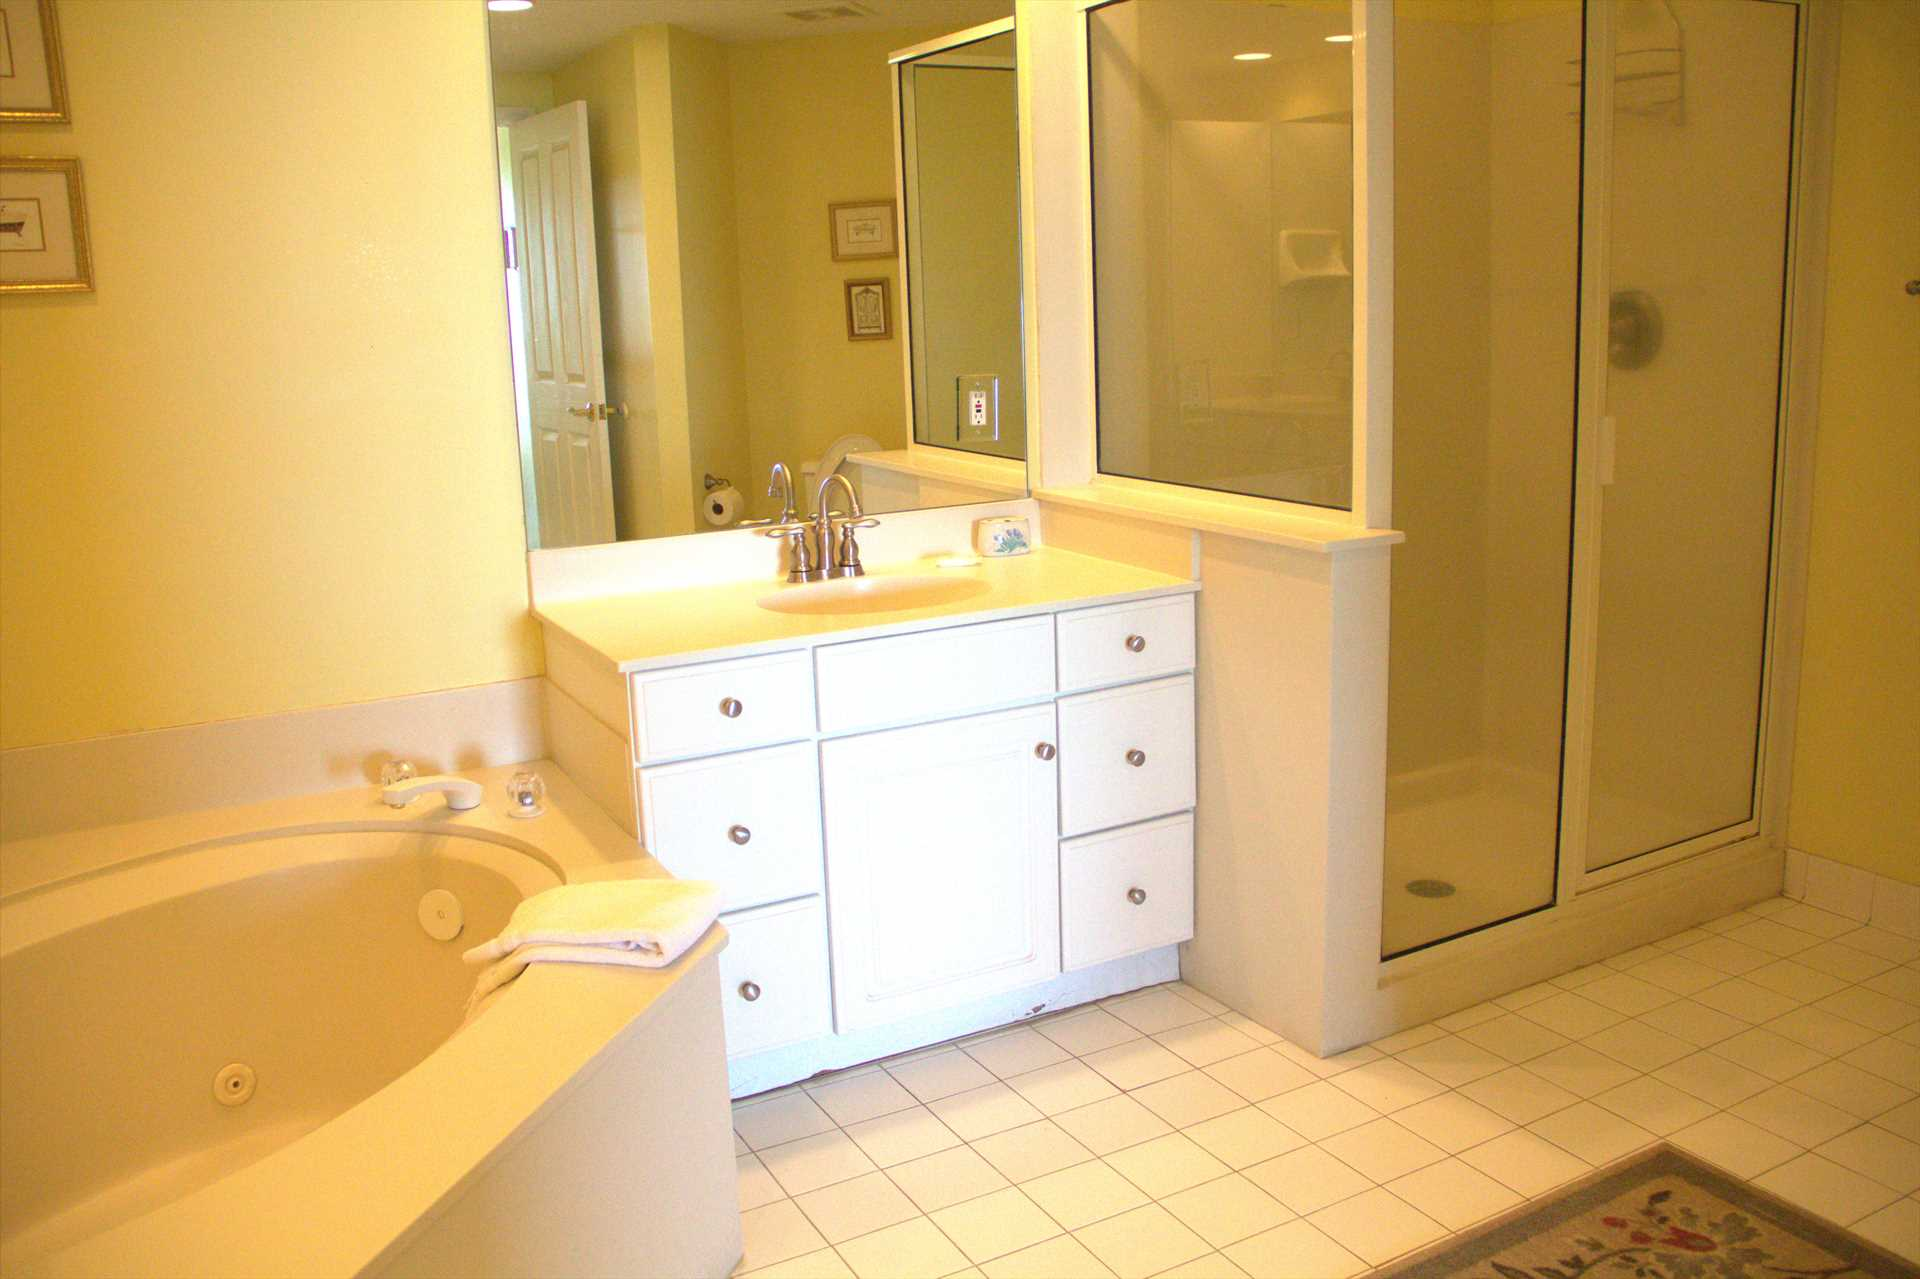 The master bedroom comes with a shower and a soaking tub